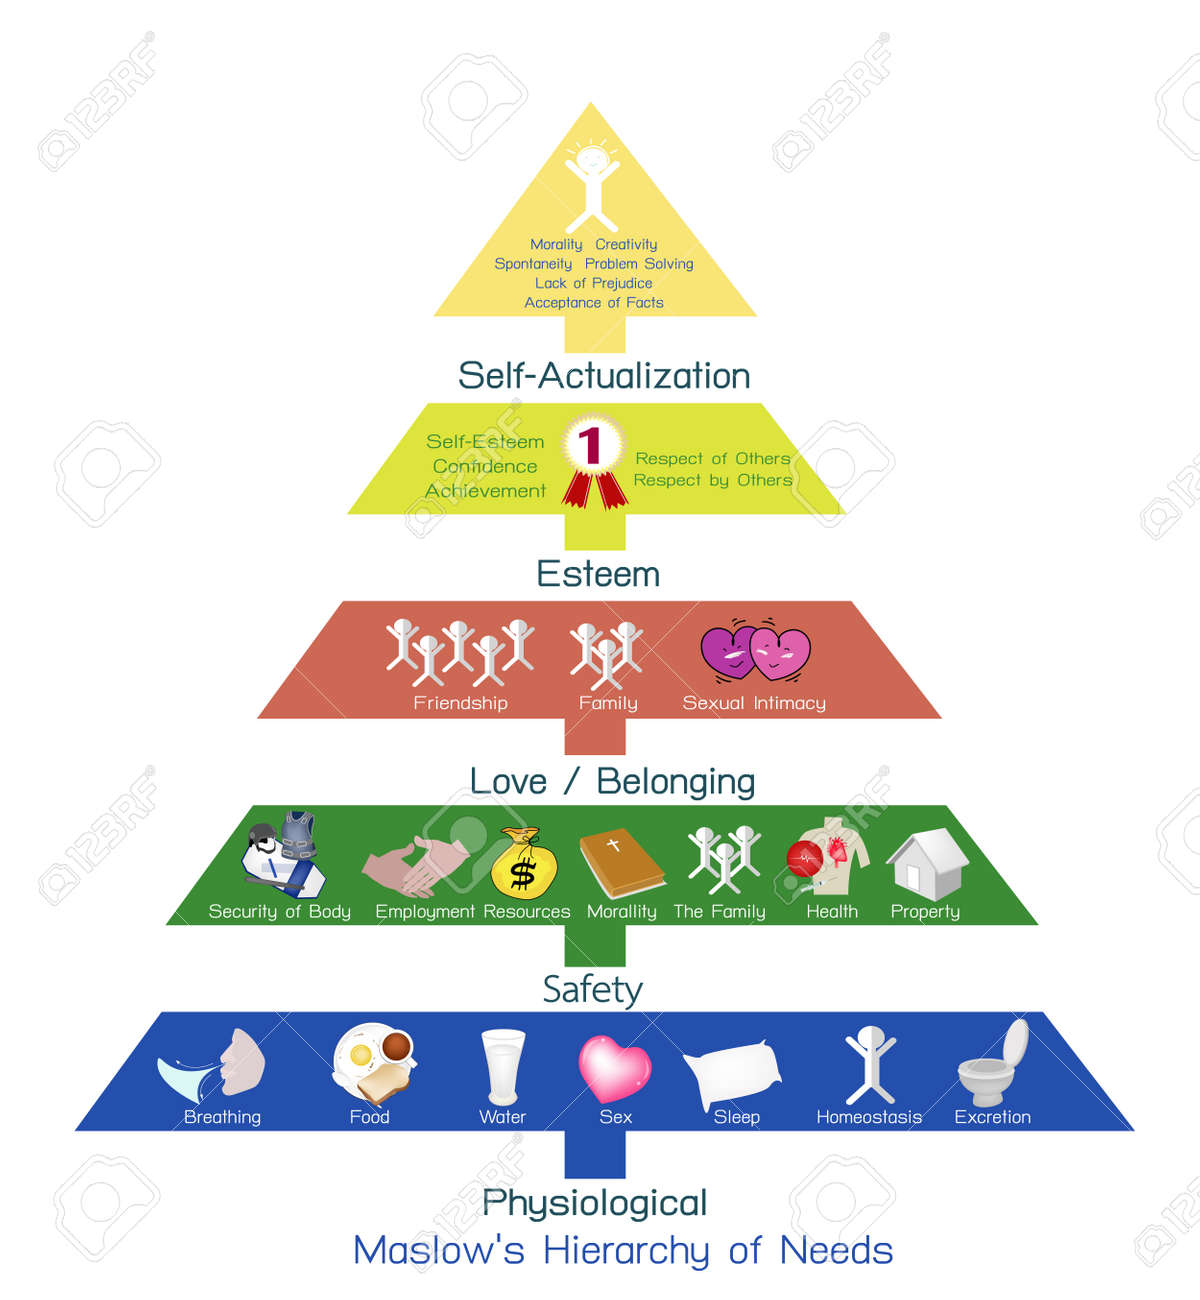 Social and Psychological Concepts, Illustration of Maslow Pyramid Chart with Five Levels Hierarchy of Needs in Human Motivation. - 68351651